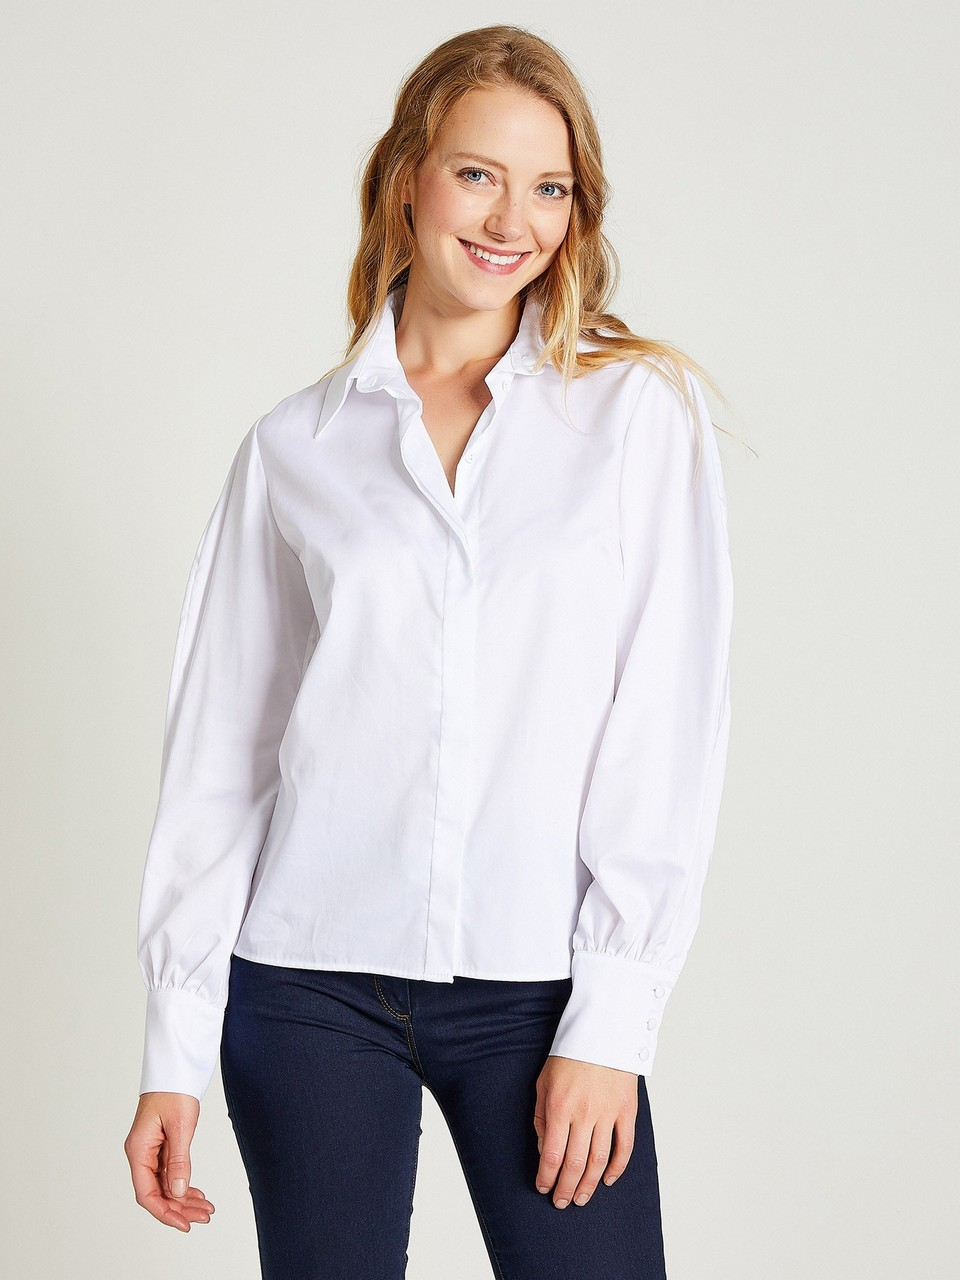 Neckband Wide Cuff Shirt